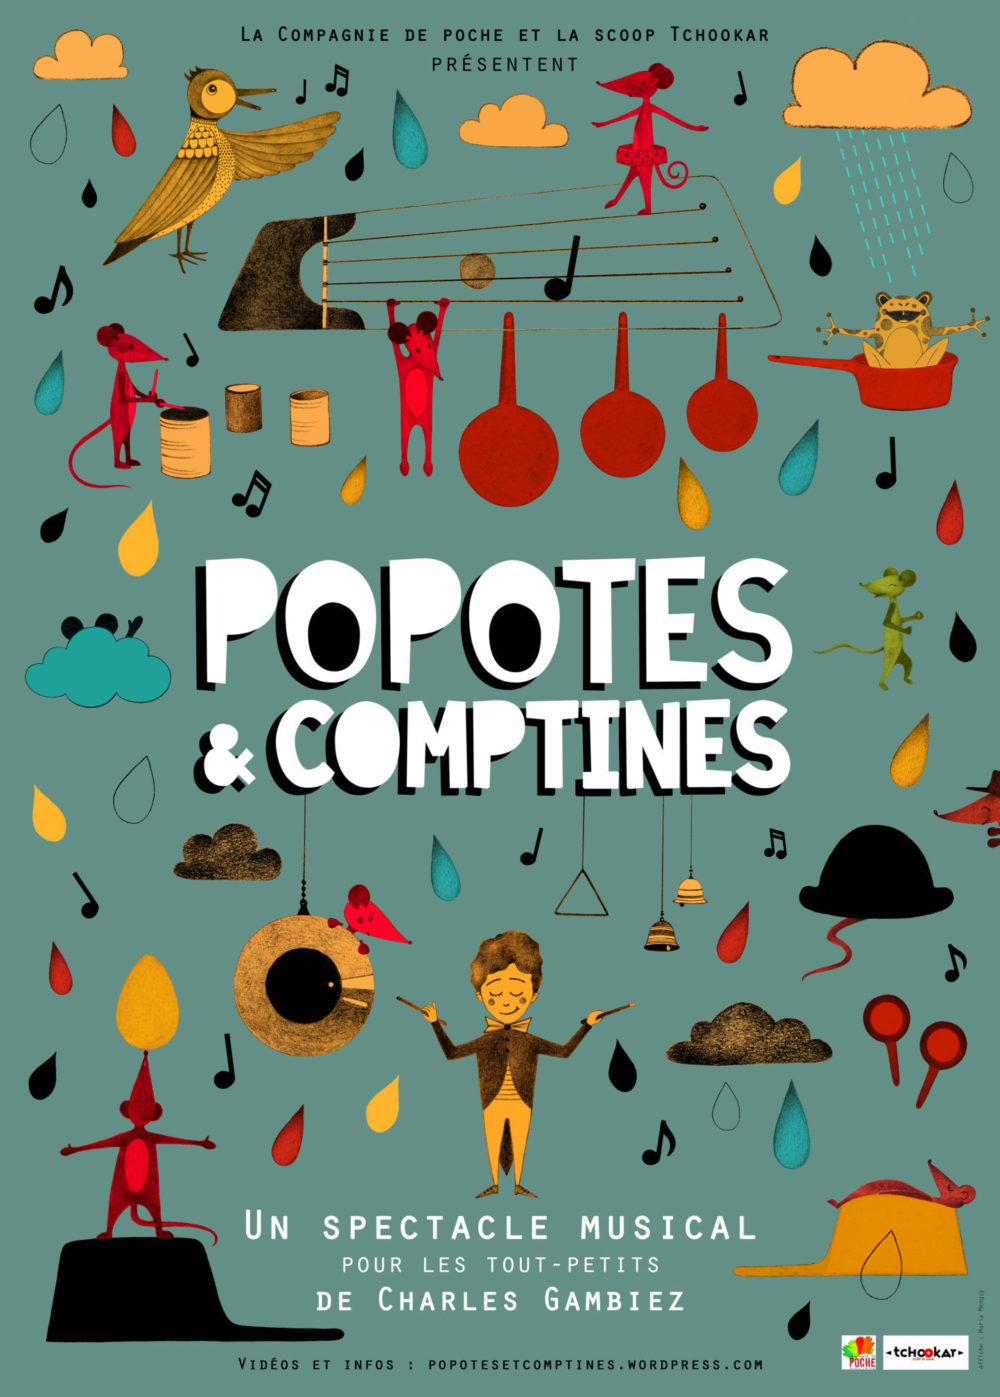 Popotes & comptines